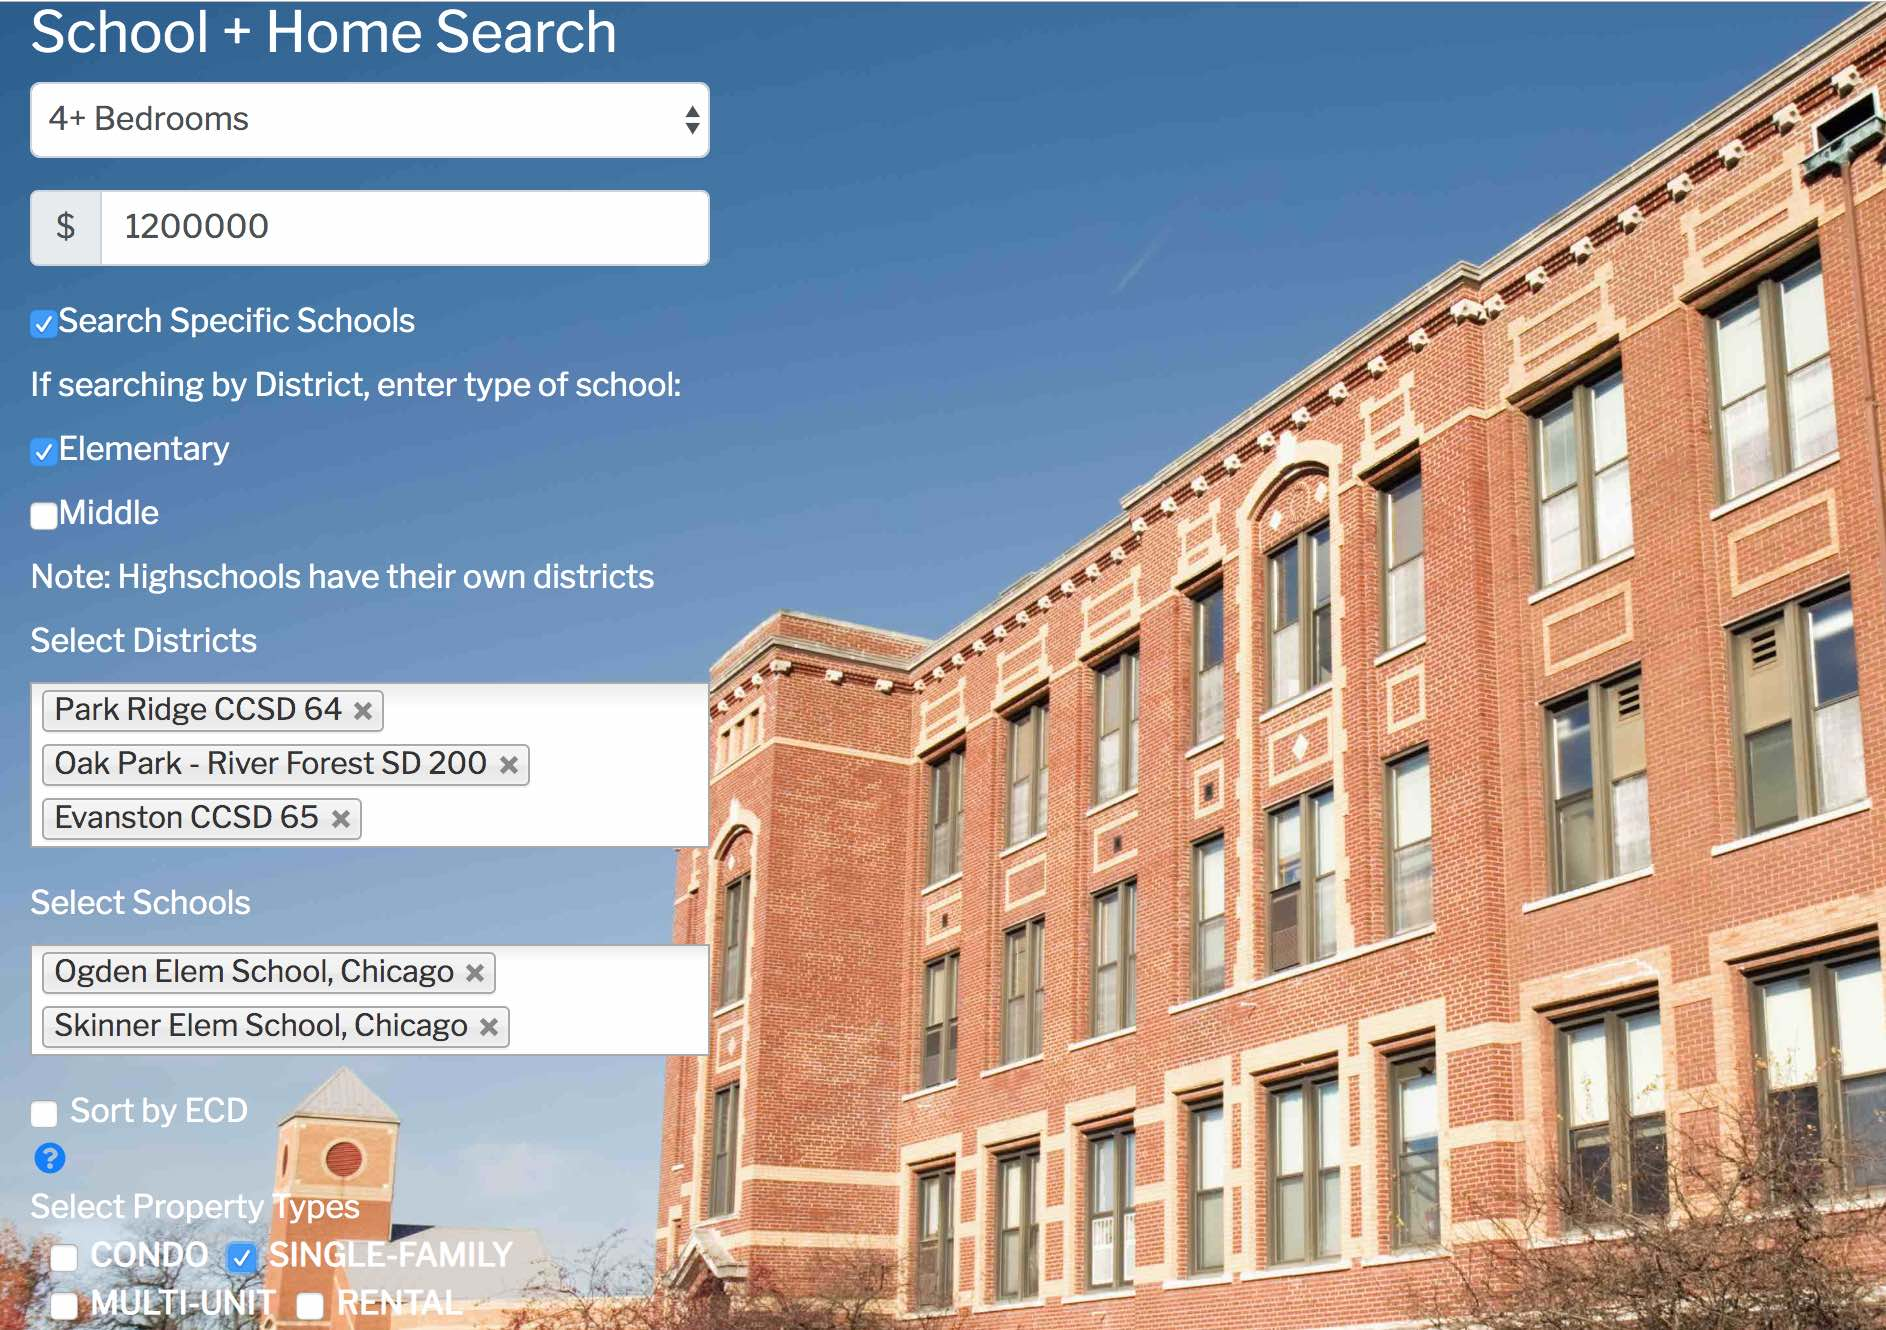 Chicago Public School Rankings And Homes For Sale In The School